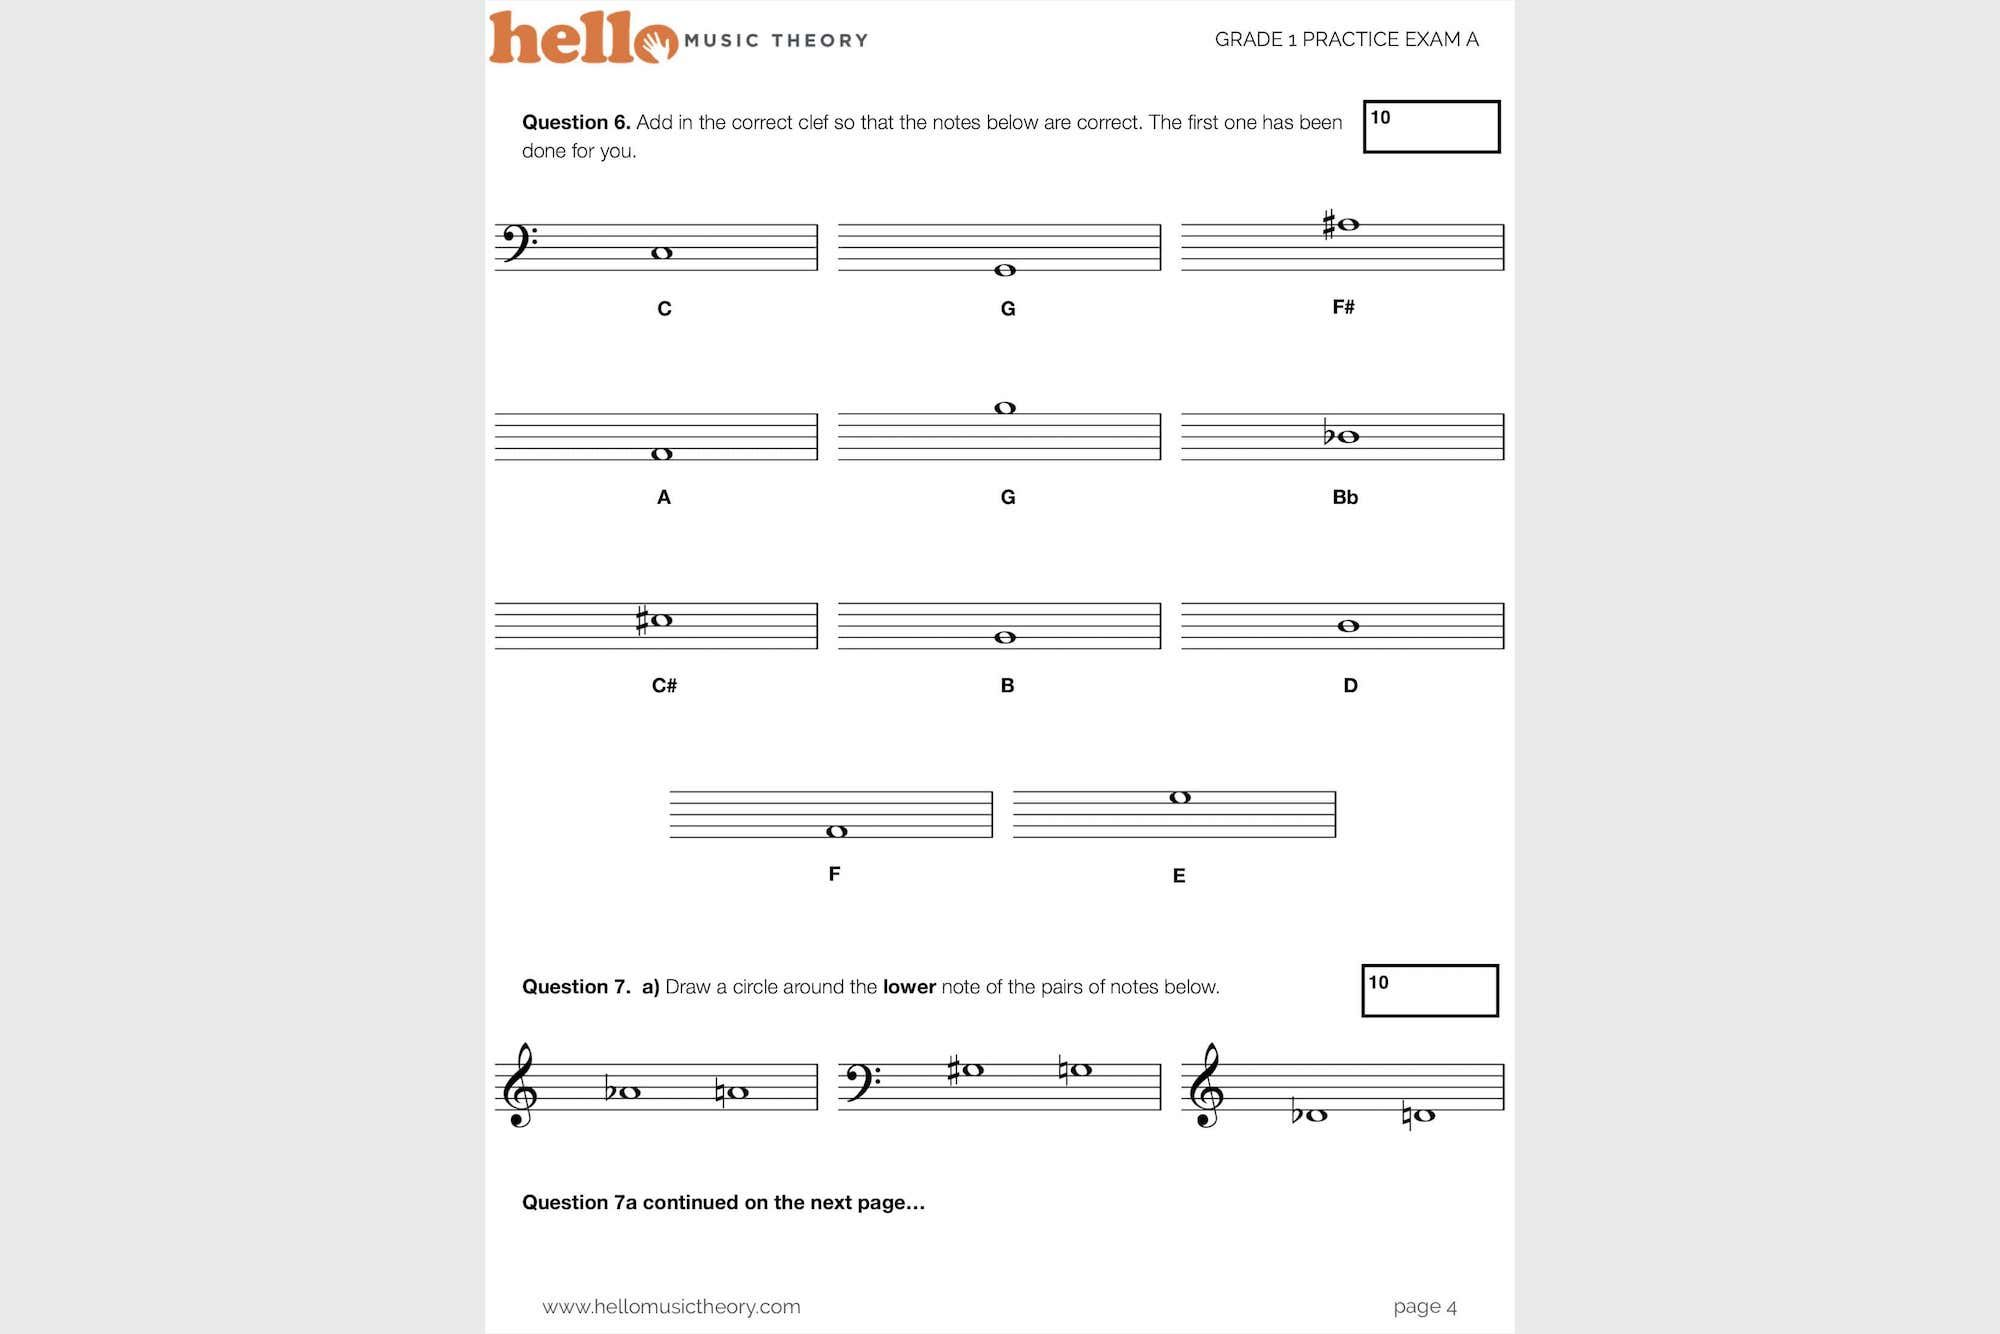 Sample from our Grade 1 Music Theory Exams Pack based on the ARBSM